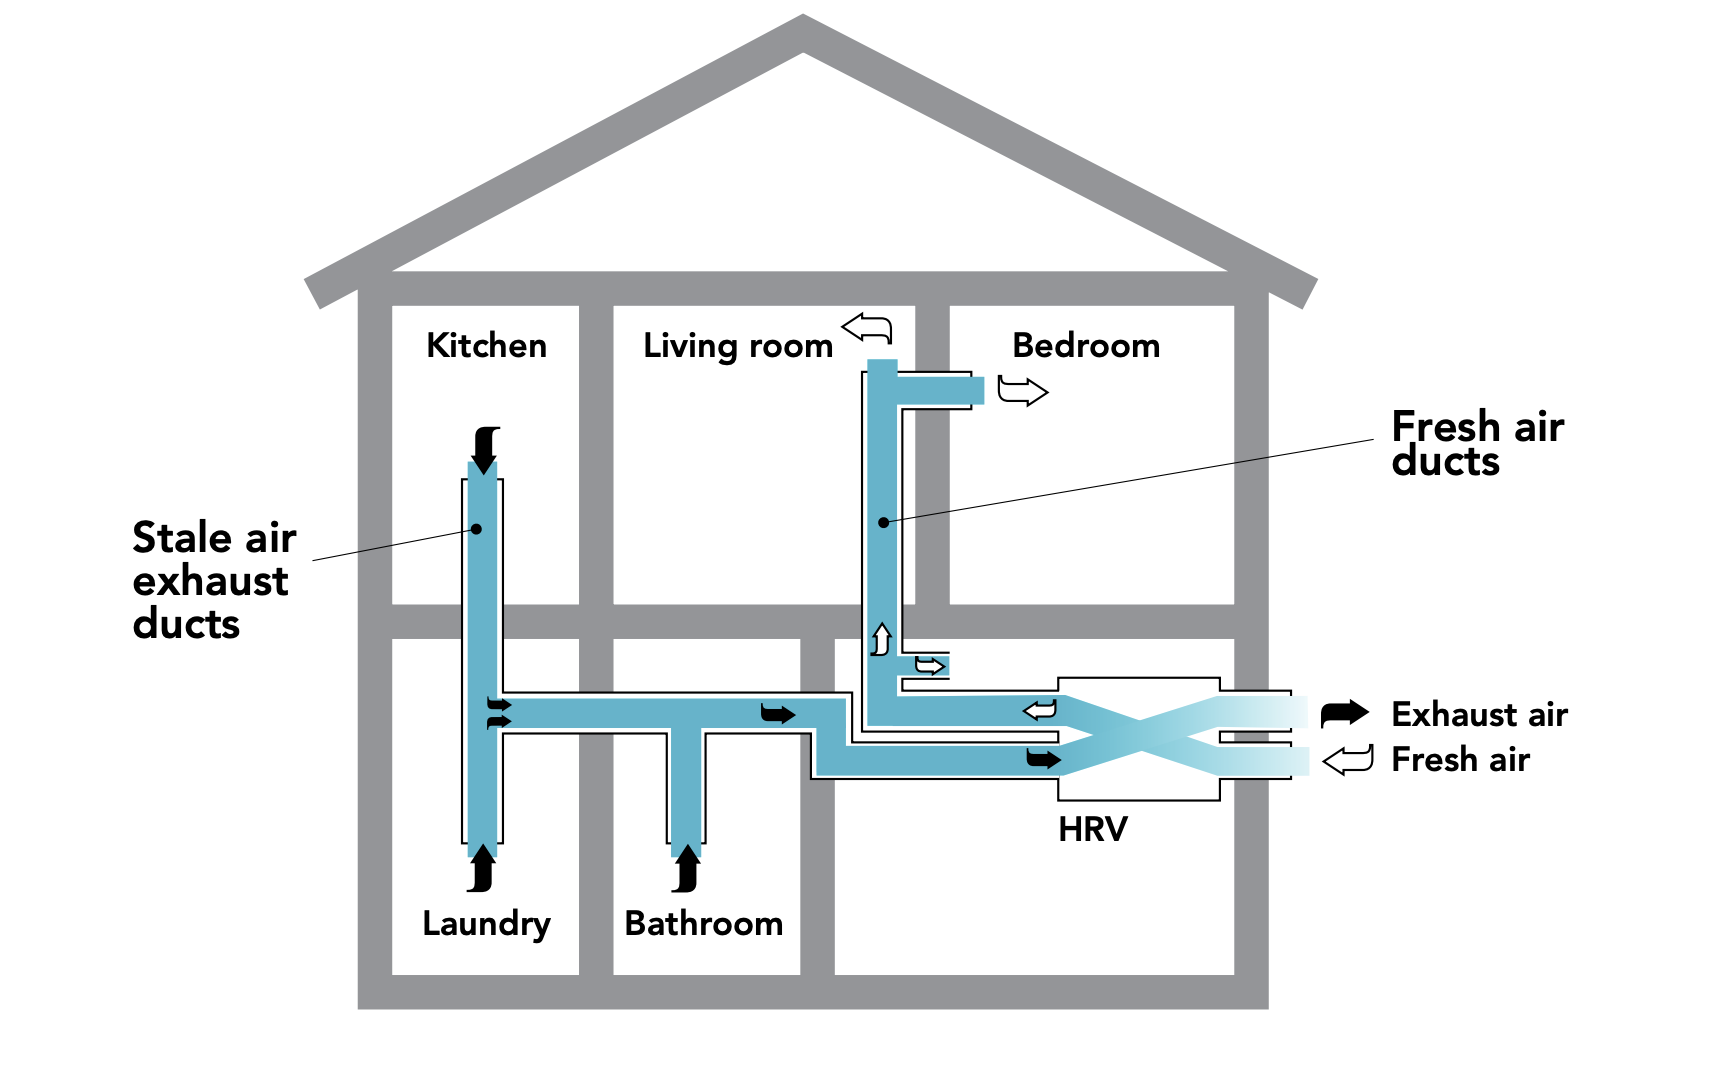 HRV with direct ductwork